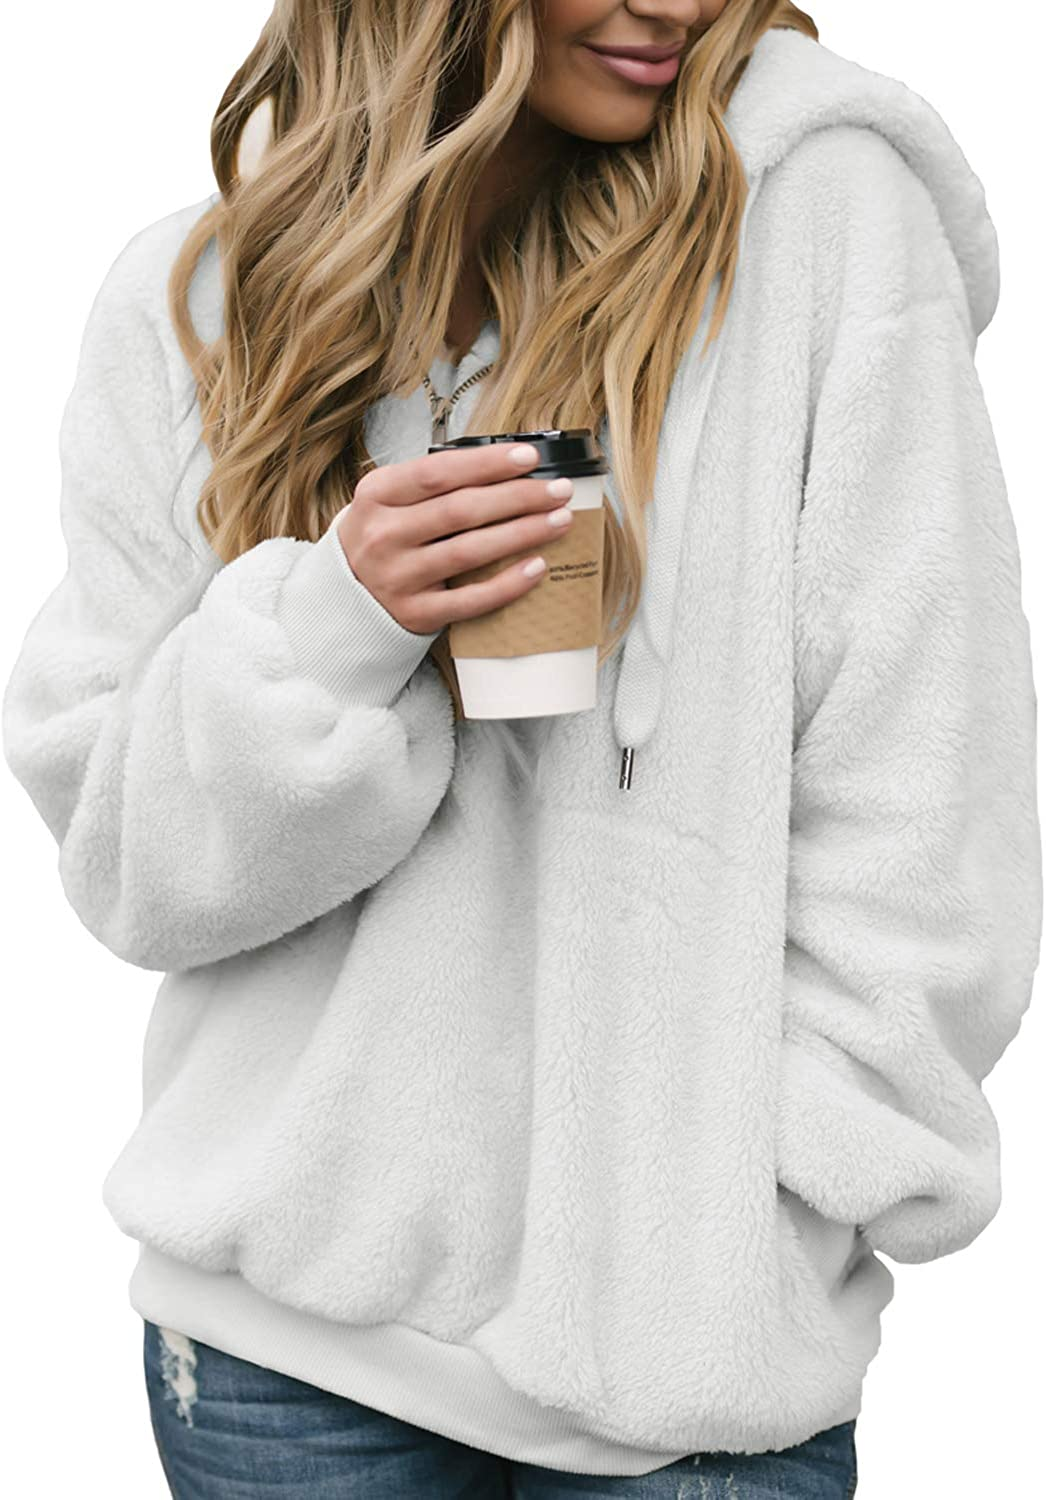 Actloe Women Casual Fuzzy Hoodie Pullover Sweatshirt Cozy Outwear with Pockets